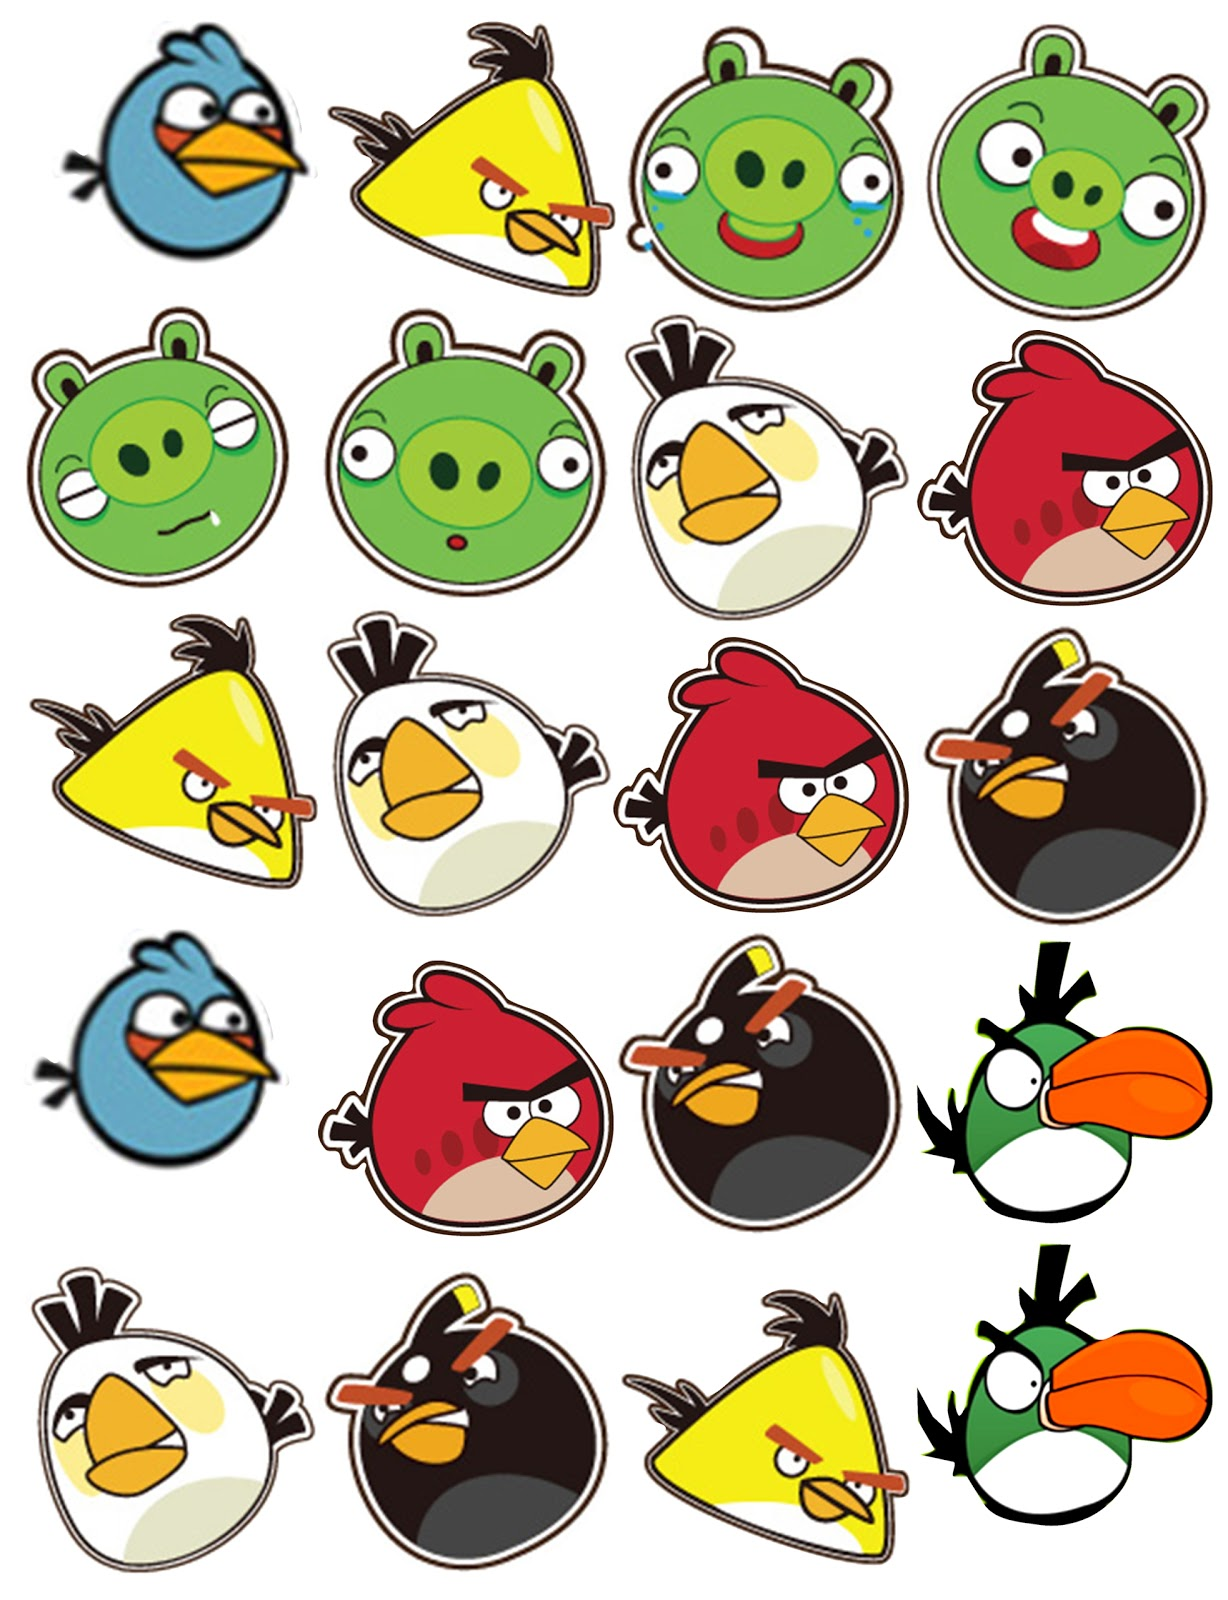 Images of Angry Birds Images To Print - #SpaceHero